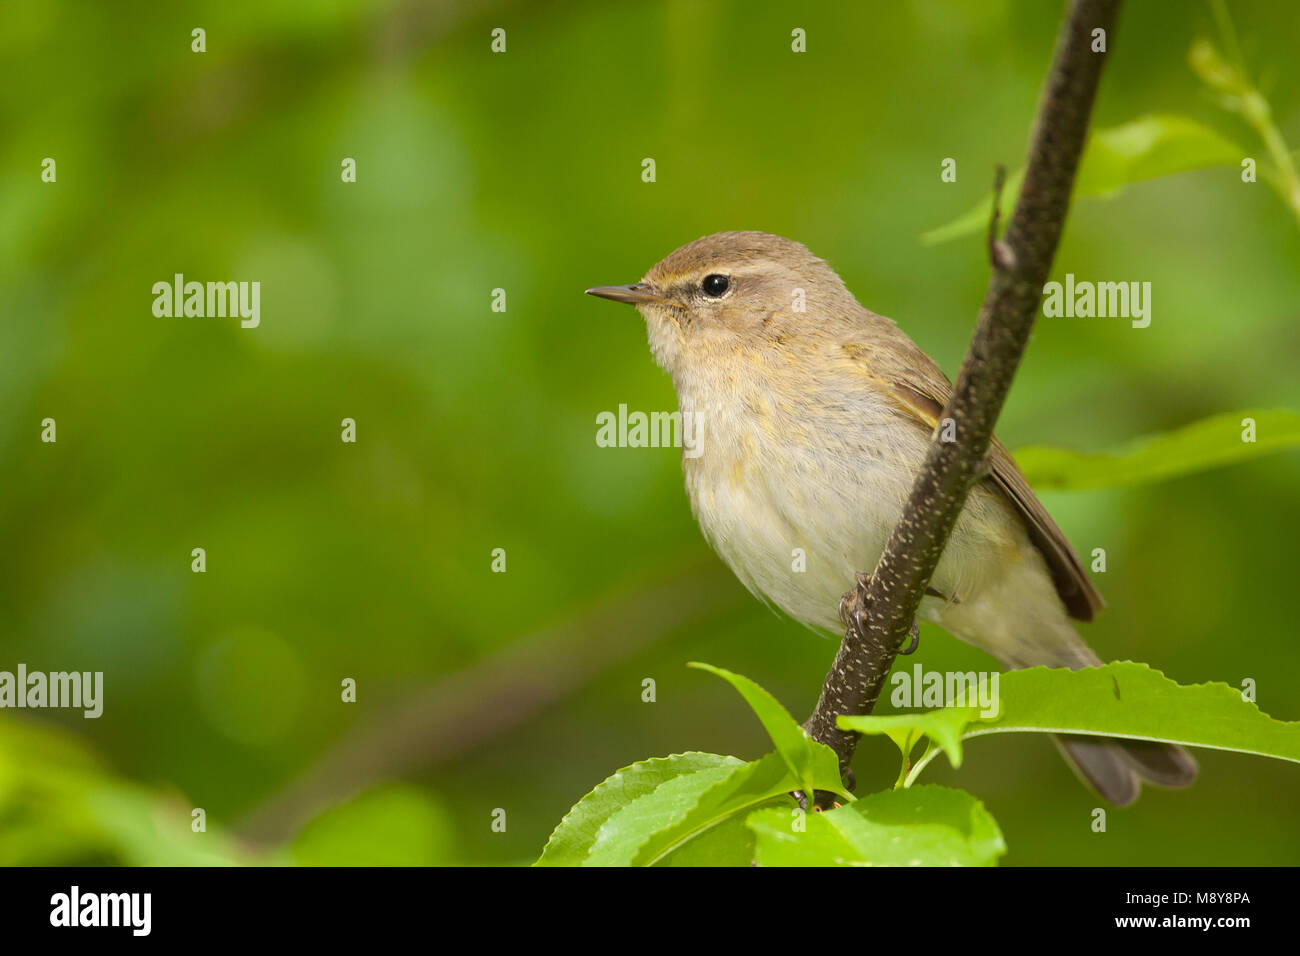 Common Chiffchaff - Zilpzalp - Phylloscopus collybita ssp. collybita, Germany Stock Photo